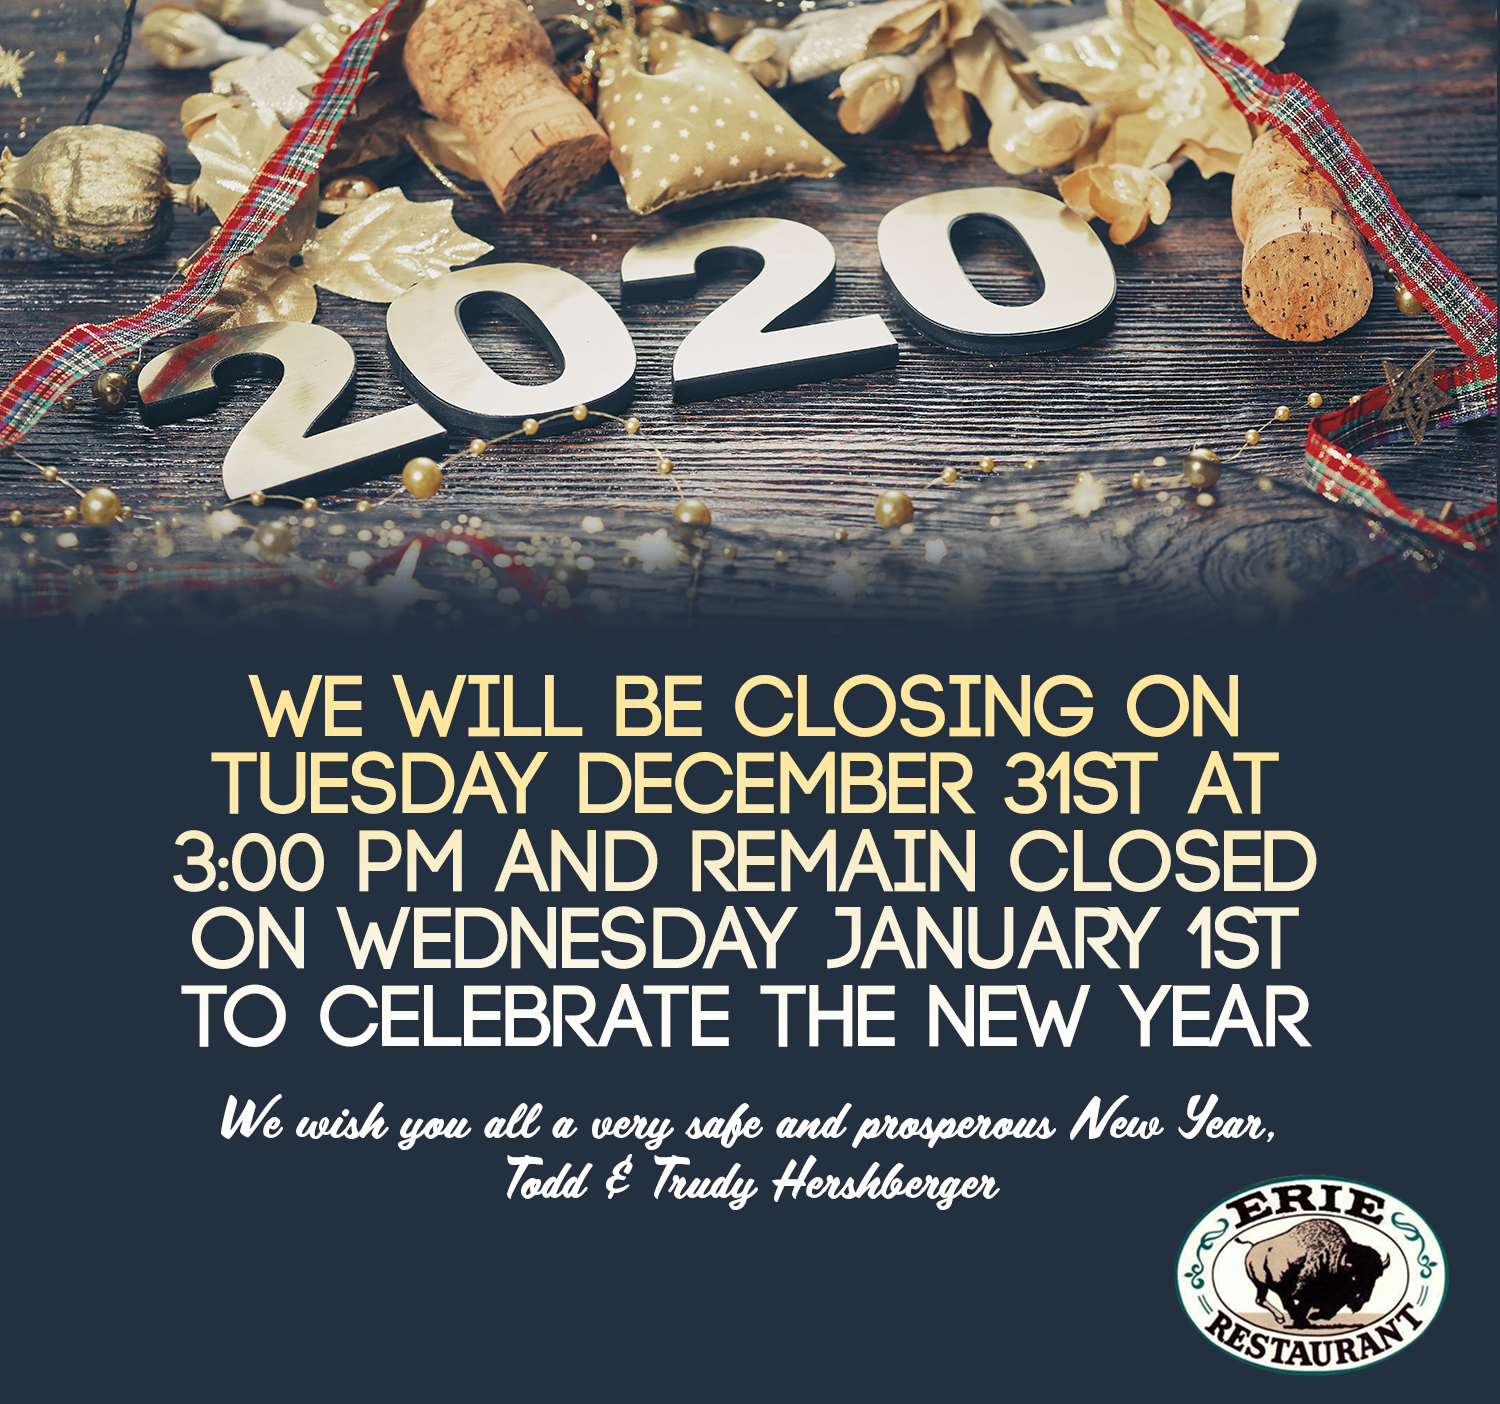 We will be closing on Tuesday December 31st at 3:00 pm and remain closed on Wednesday January 1st to celebrate the New Year with our Families. We wish you all a very safe and prosperous New Year, Todd & Trudy Hershberger.